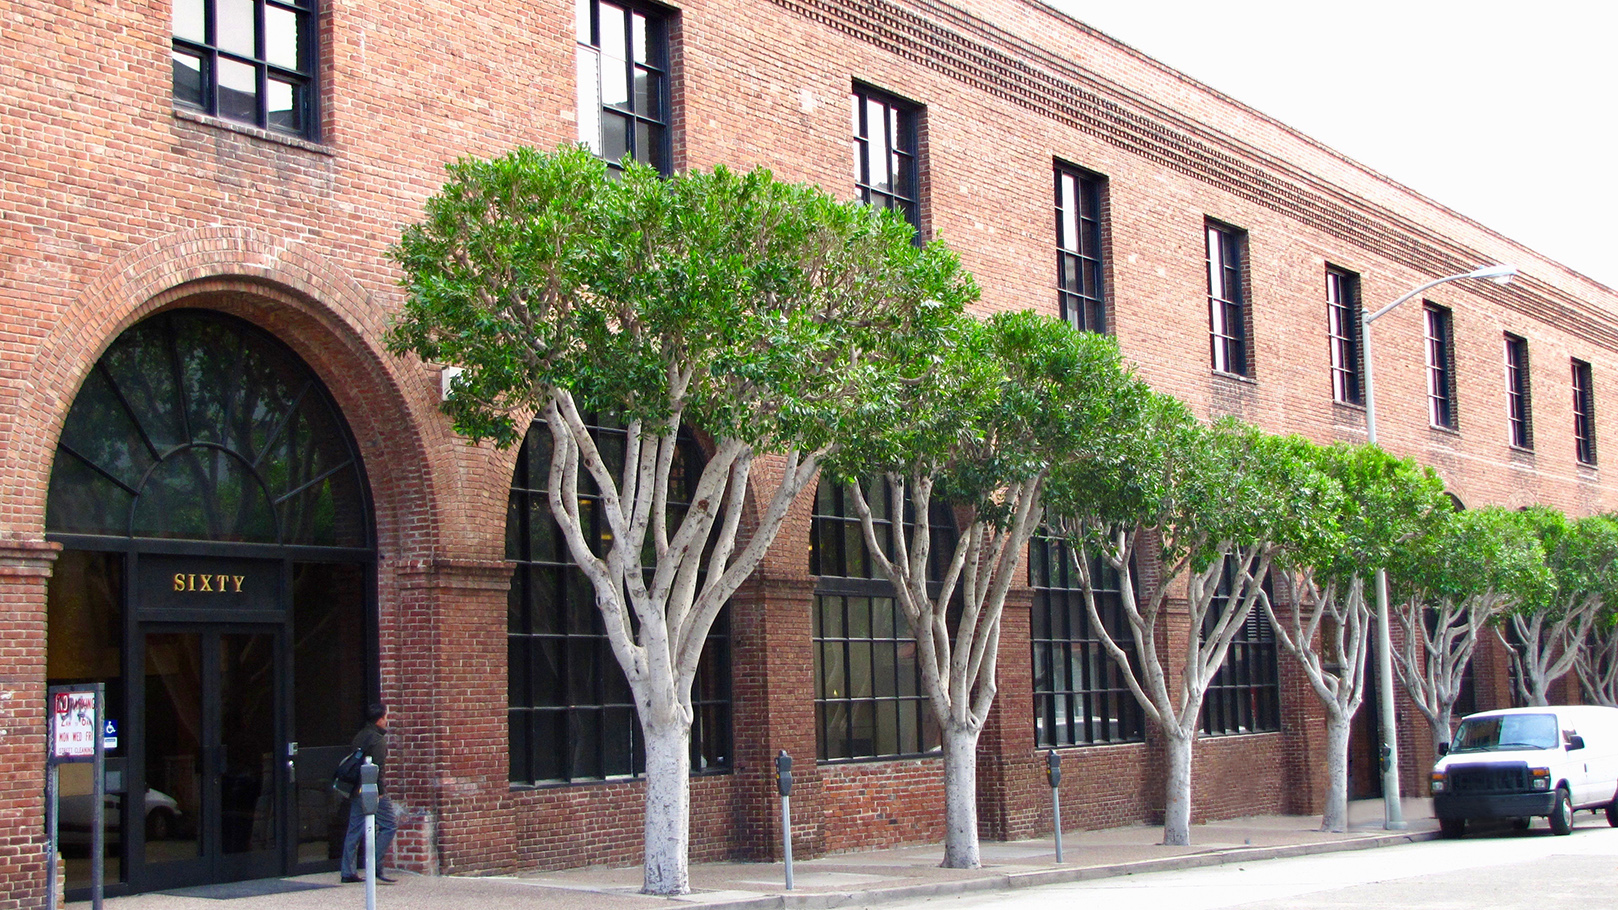 Pruned Ficus Trees on the Street